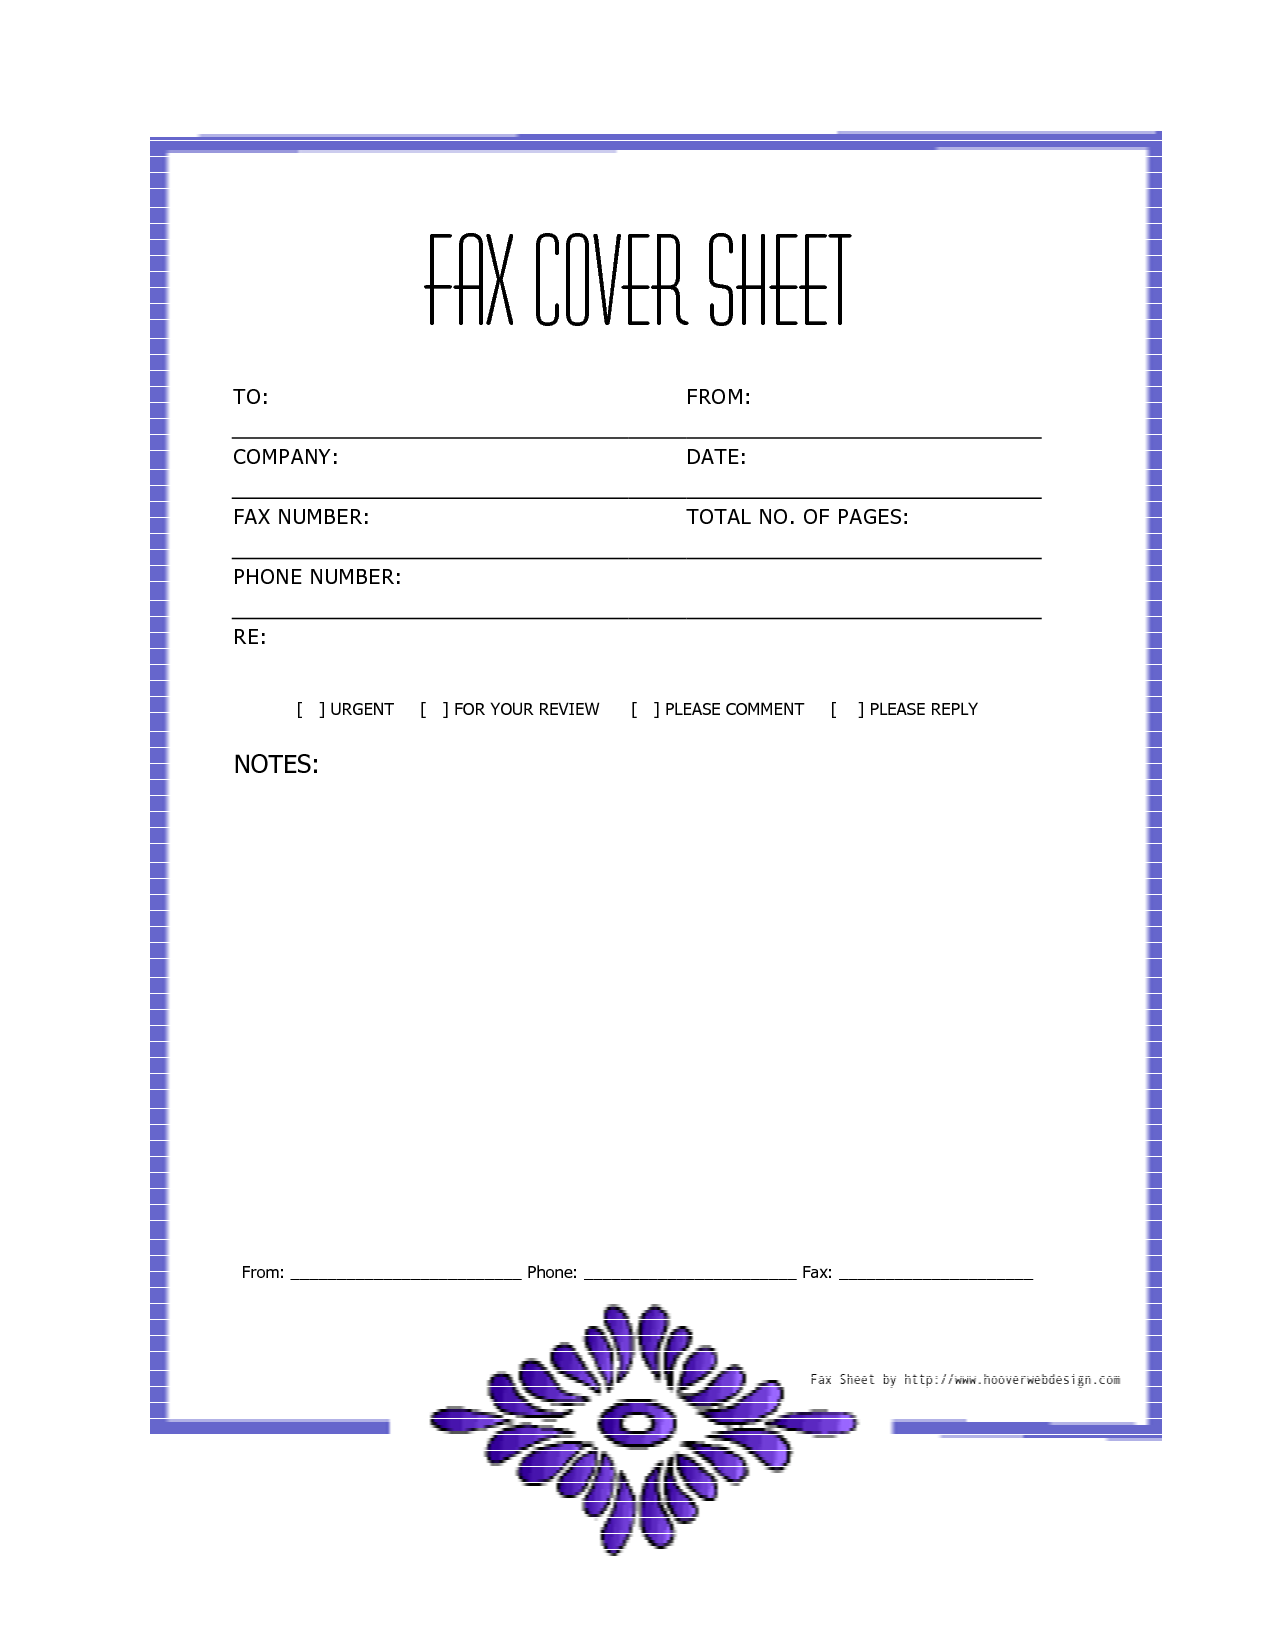 Free Downloads Fax Covers Sheets | Free Printable Fax Cover Sheet Template  Elegant   Download As  Free Downloadable Fax Cover Sheet